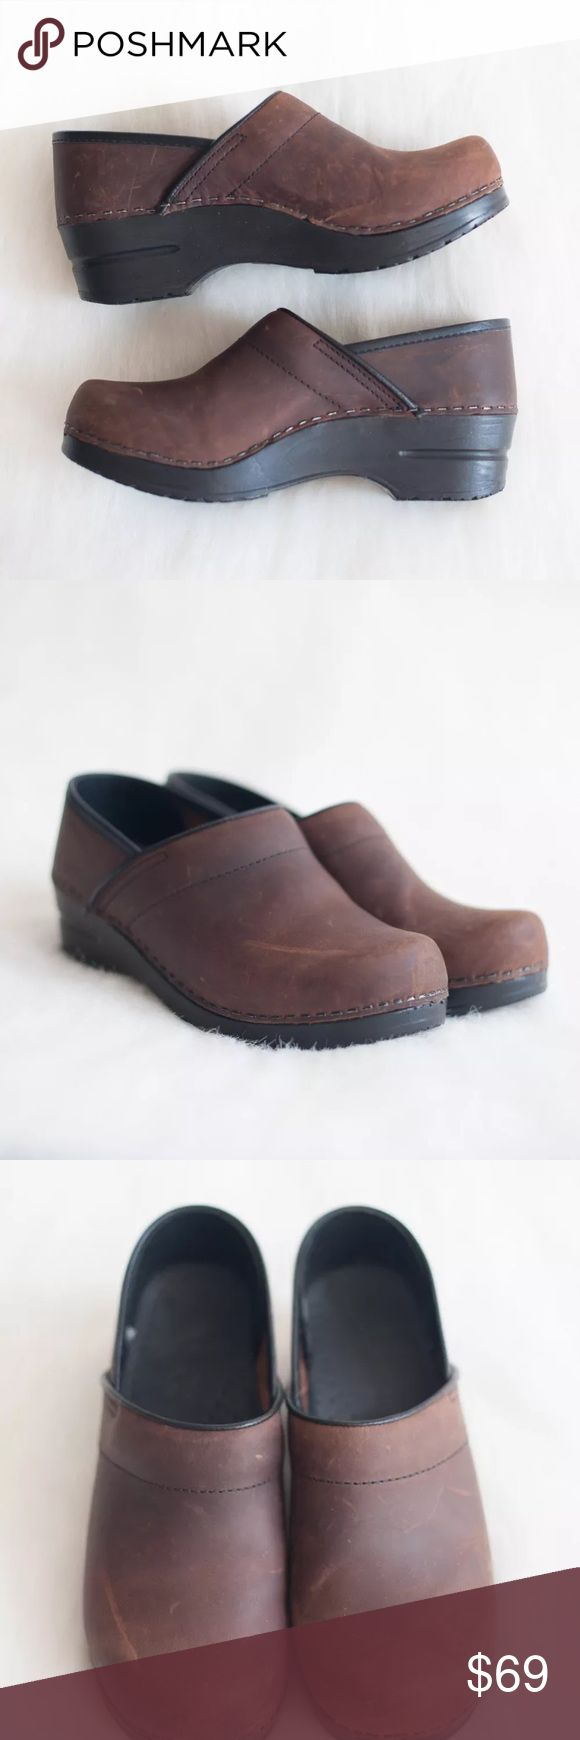 """Dansko Professional Clogs New without box, excellent condition! Size: 36 (5.5 / 6 US). Color: Brown. Retail price: $130.  •Leather and/or fabric uppers  •Padded instep collar for comfort when walking  •Roomy reinforced toe box for protection with plenty of """"wiggle room"""" for your toes  •PU outsole with rocker bottom to propel foot forward and provide shock absorption  •Heel height 2""""  Please refer to Dansko website for fit guide if you're not familiar with the brand. Dansko Shoes…"""